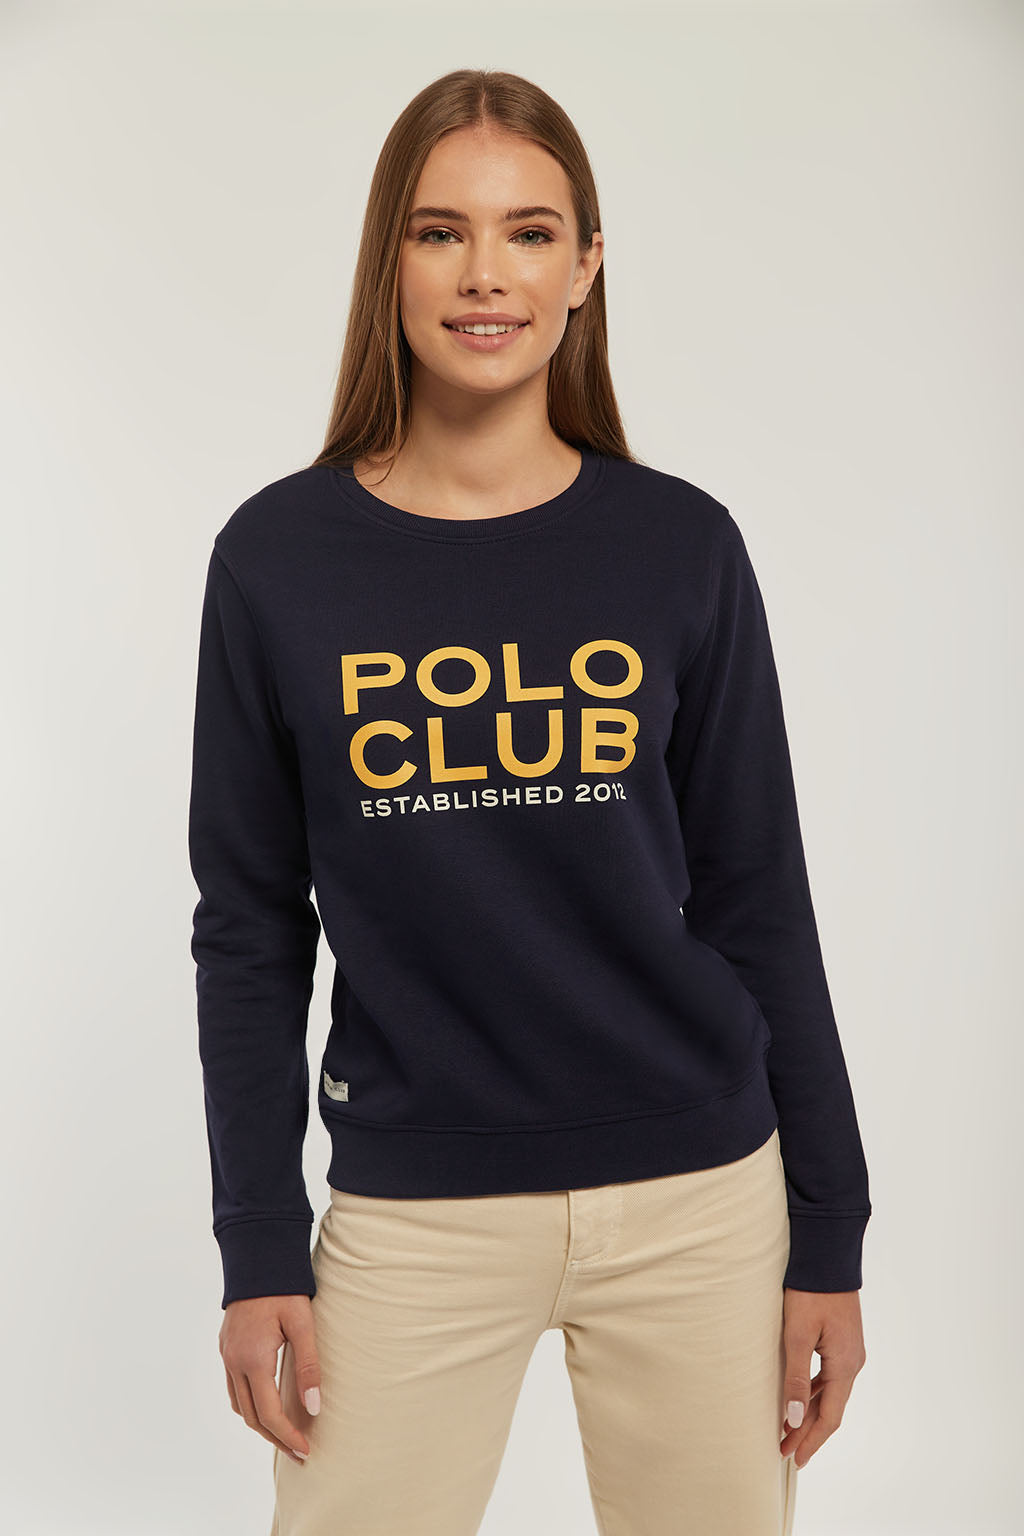 Navy blue sweatshirt with bi-coloured graphic print